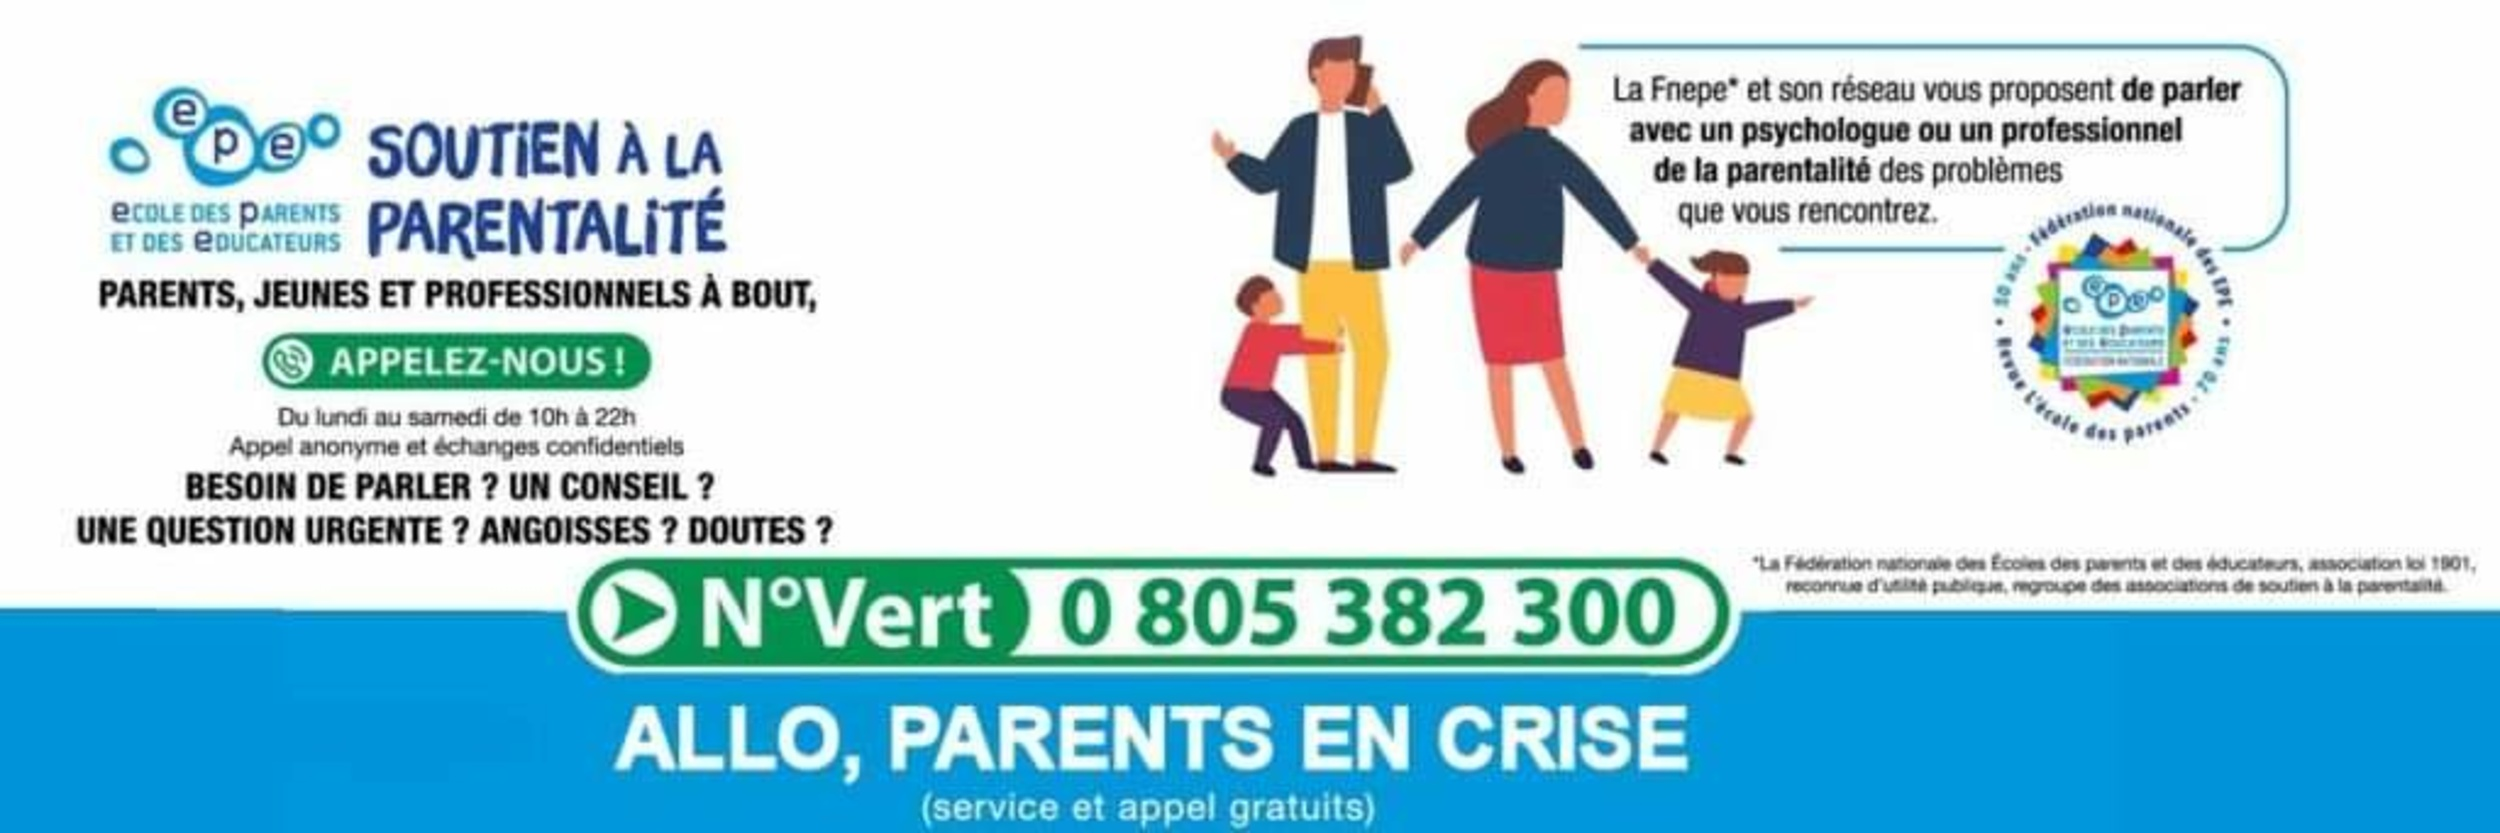 """ALLÔ PARENTS EN CRISE - COVID"